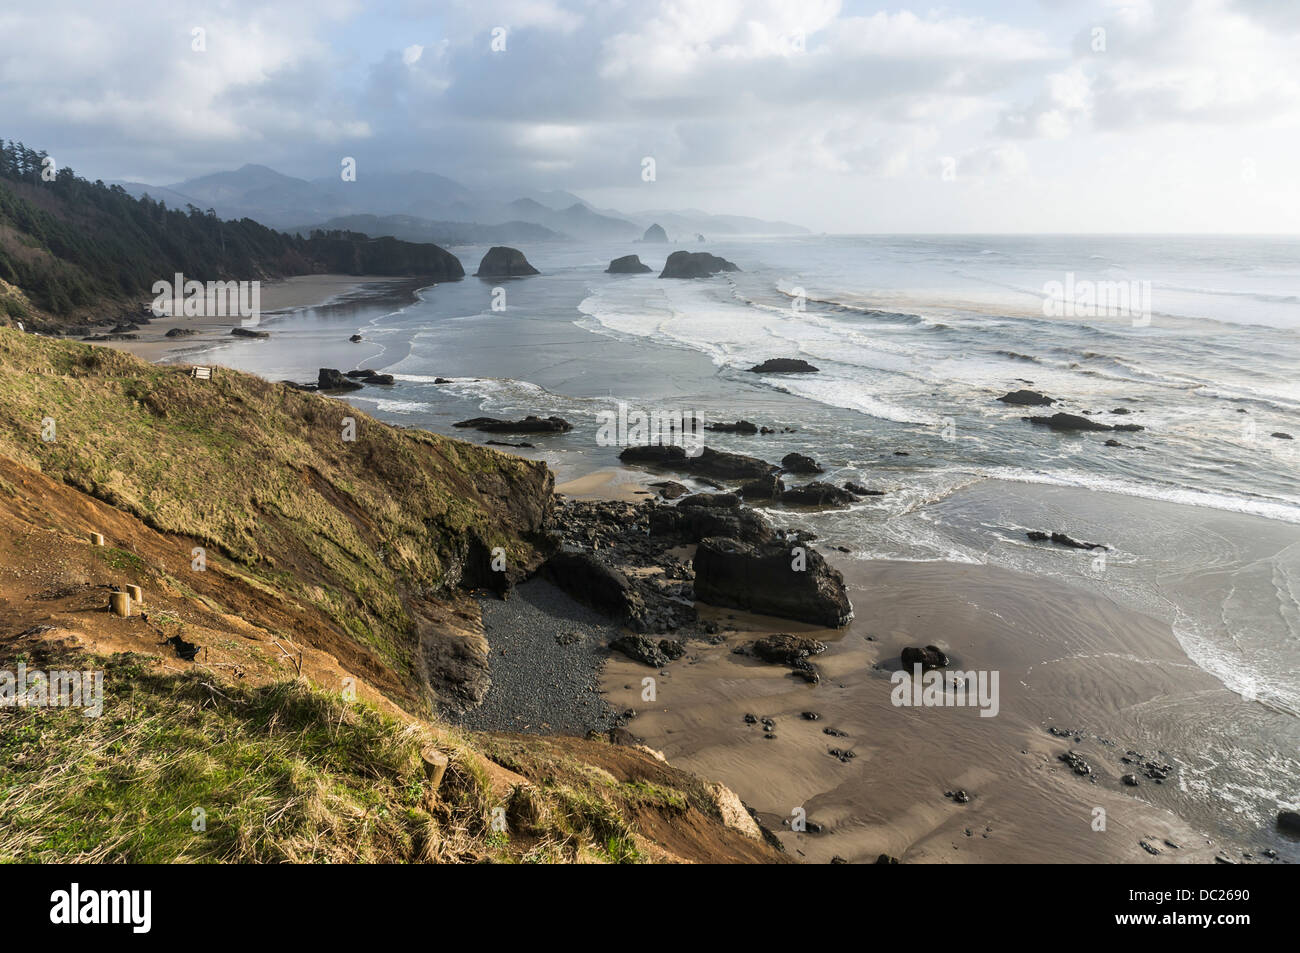 View of the Oregon Coast at Ecola State Park near Cannon Beach, Oregon. - Stock Image